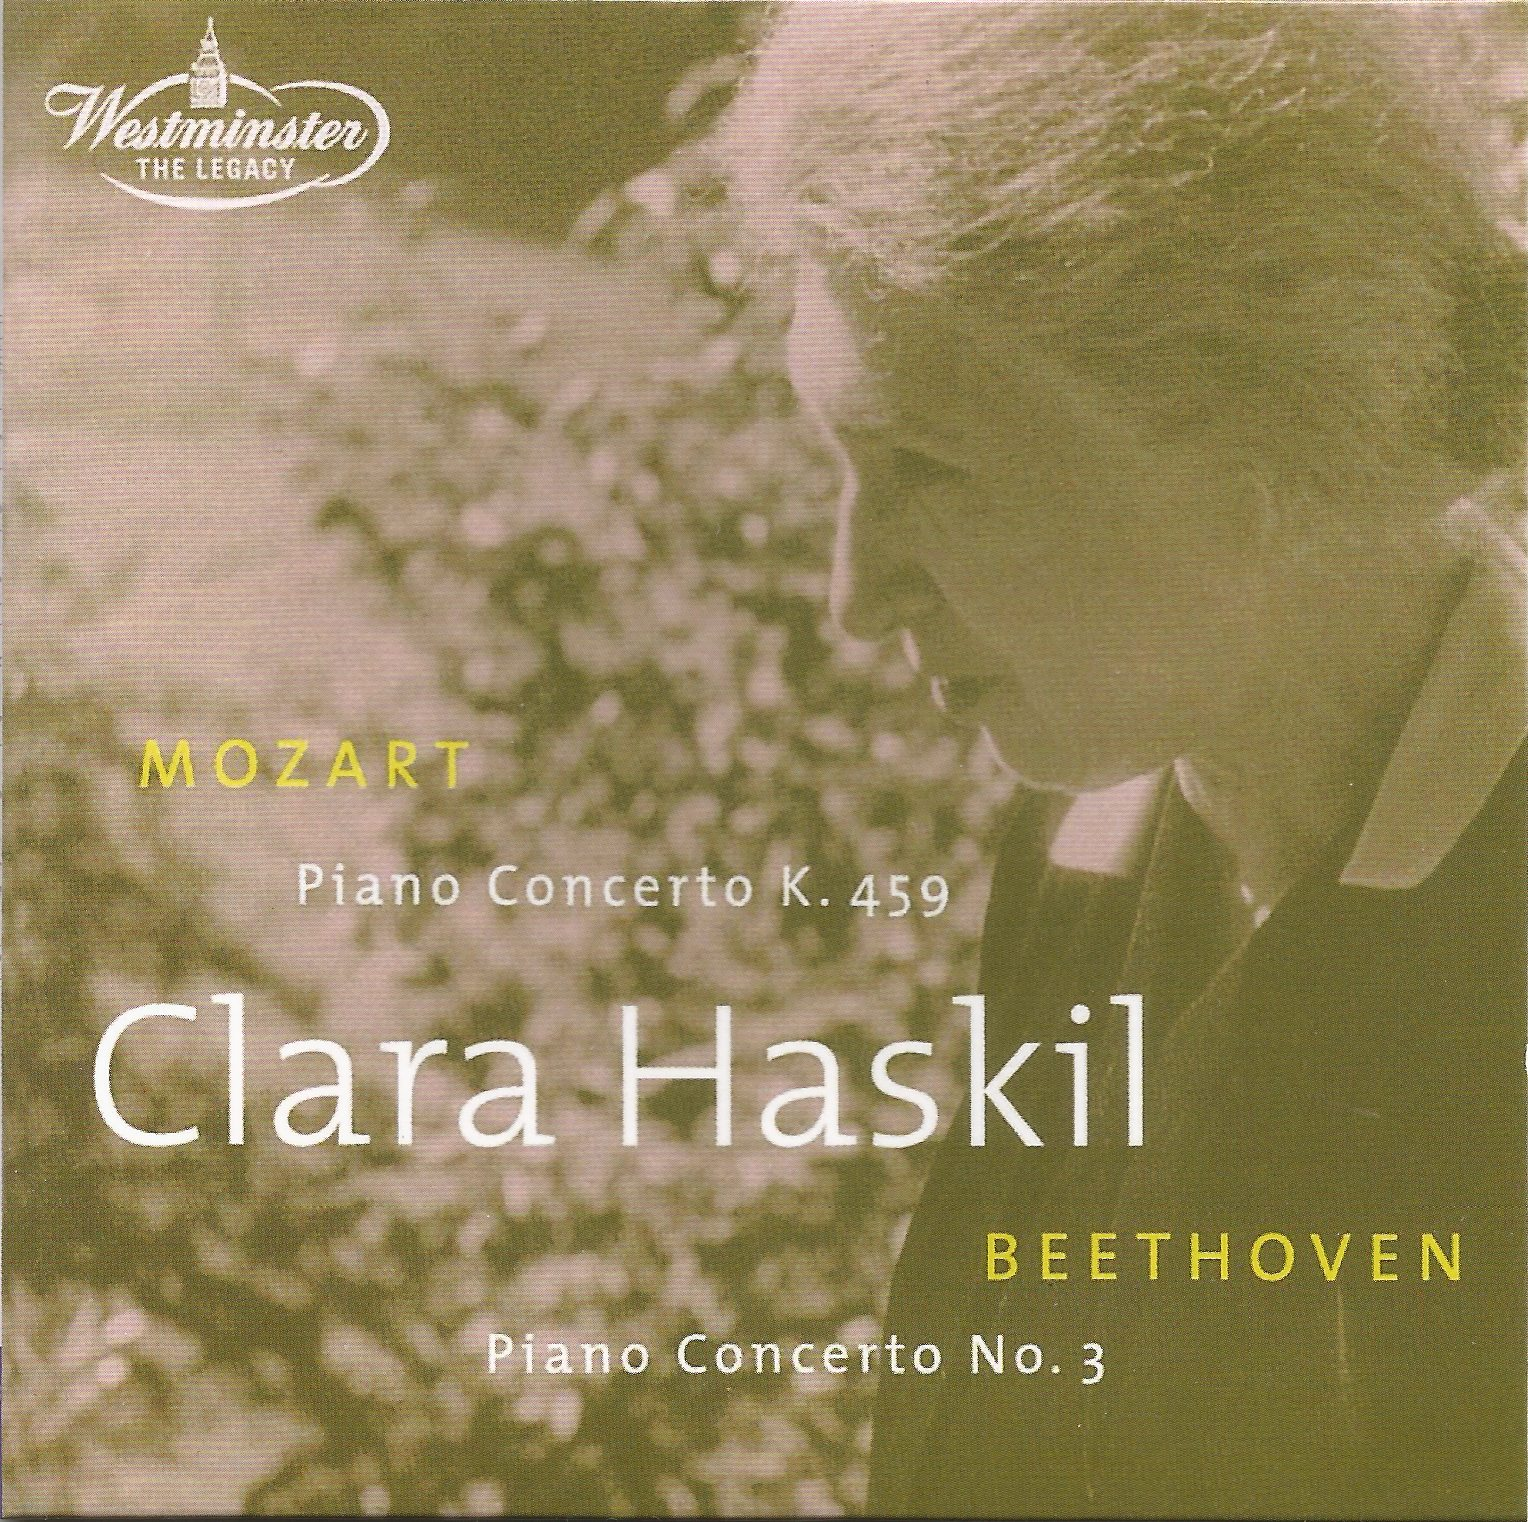 Clara Haskil at Westminster